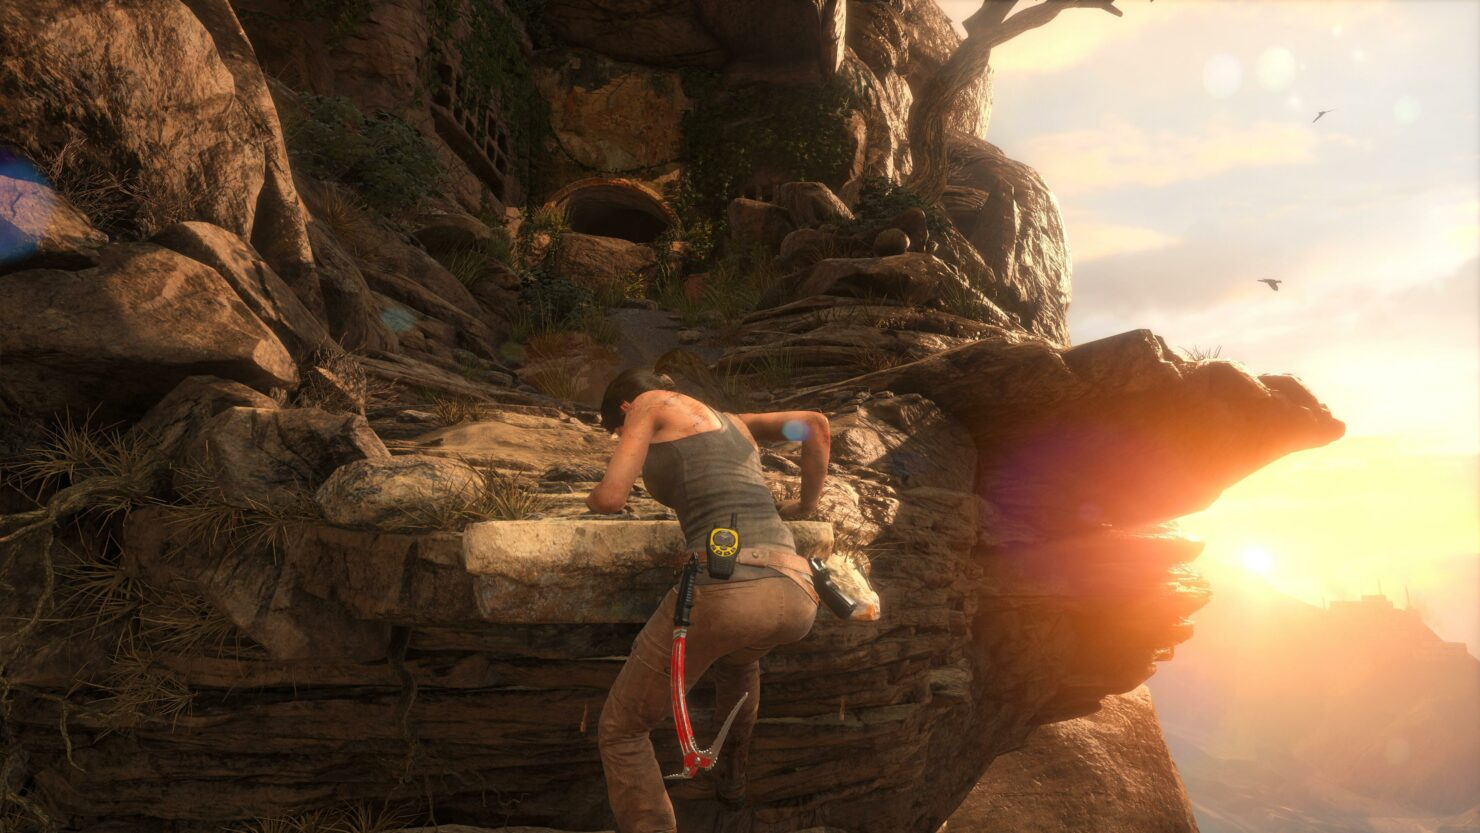 rise-of-the-tomb-raider_pc_4k_pcmr_34